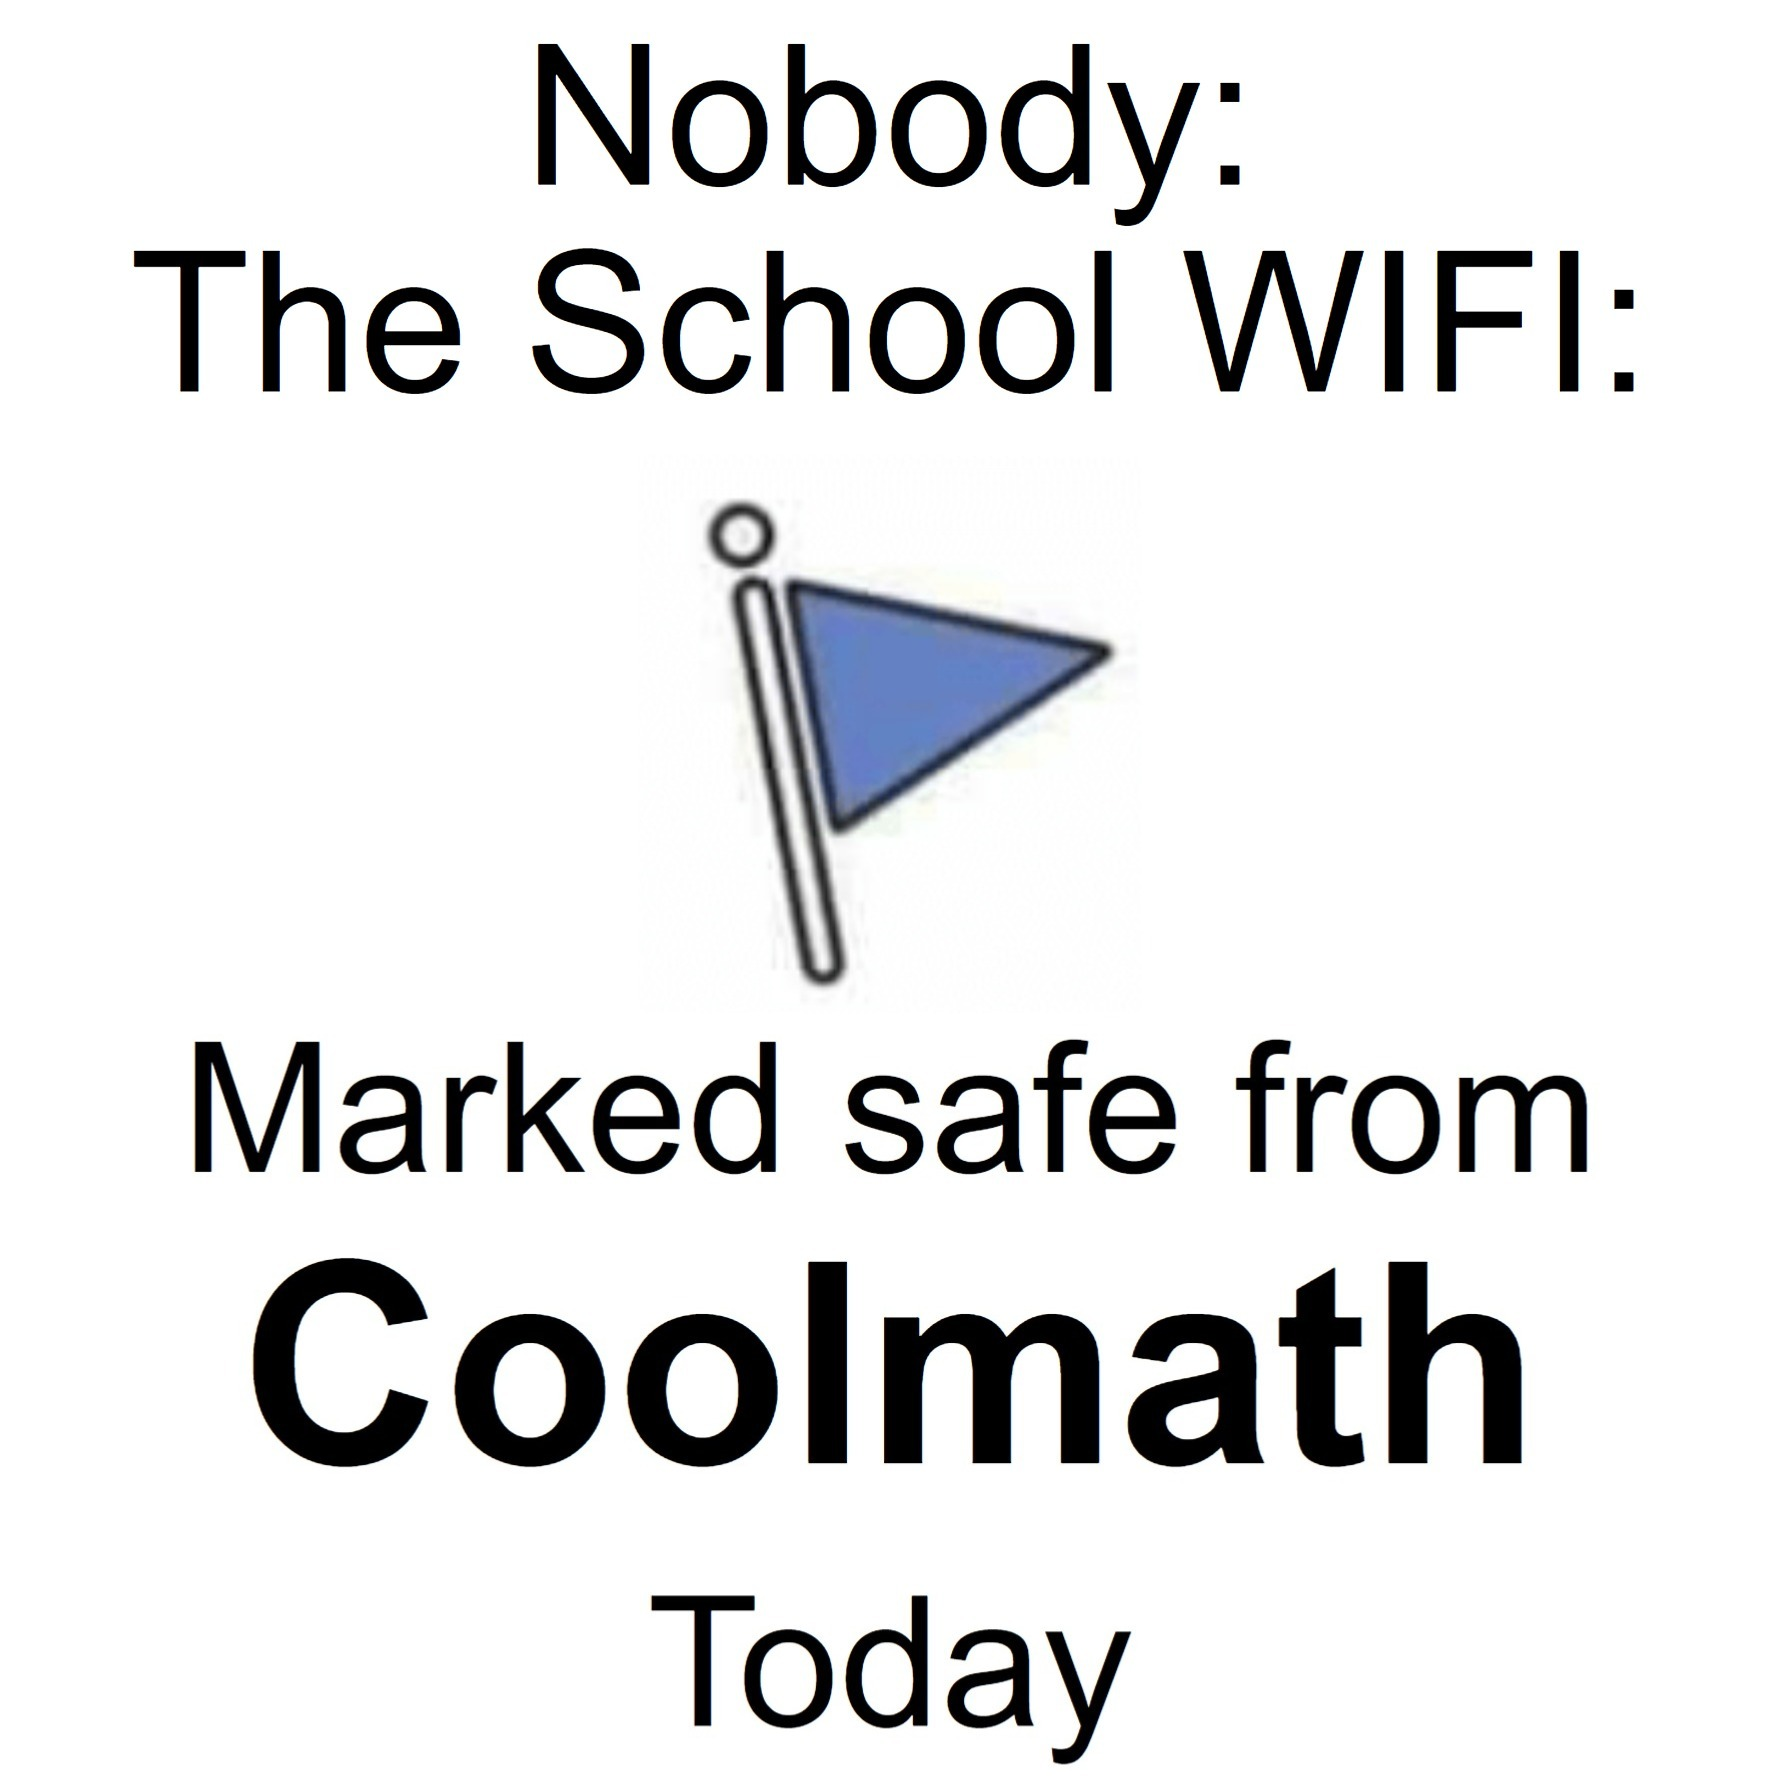 Coolmath RIP - meme